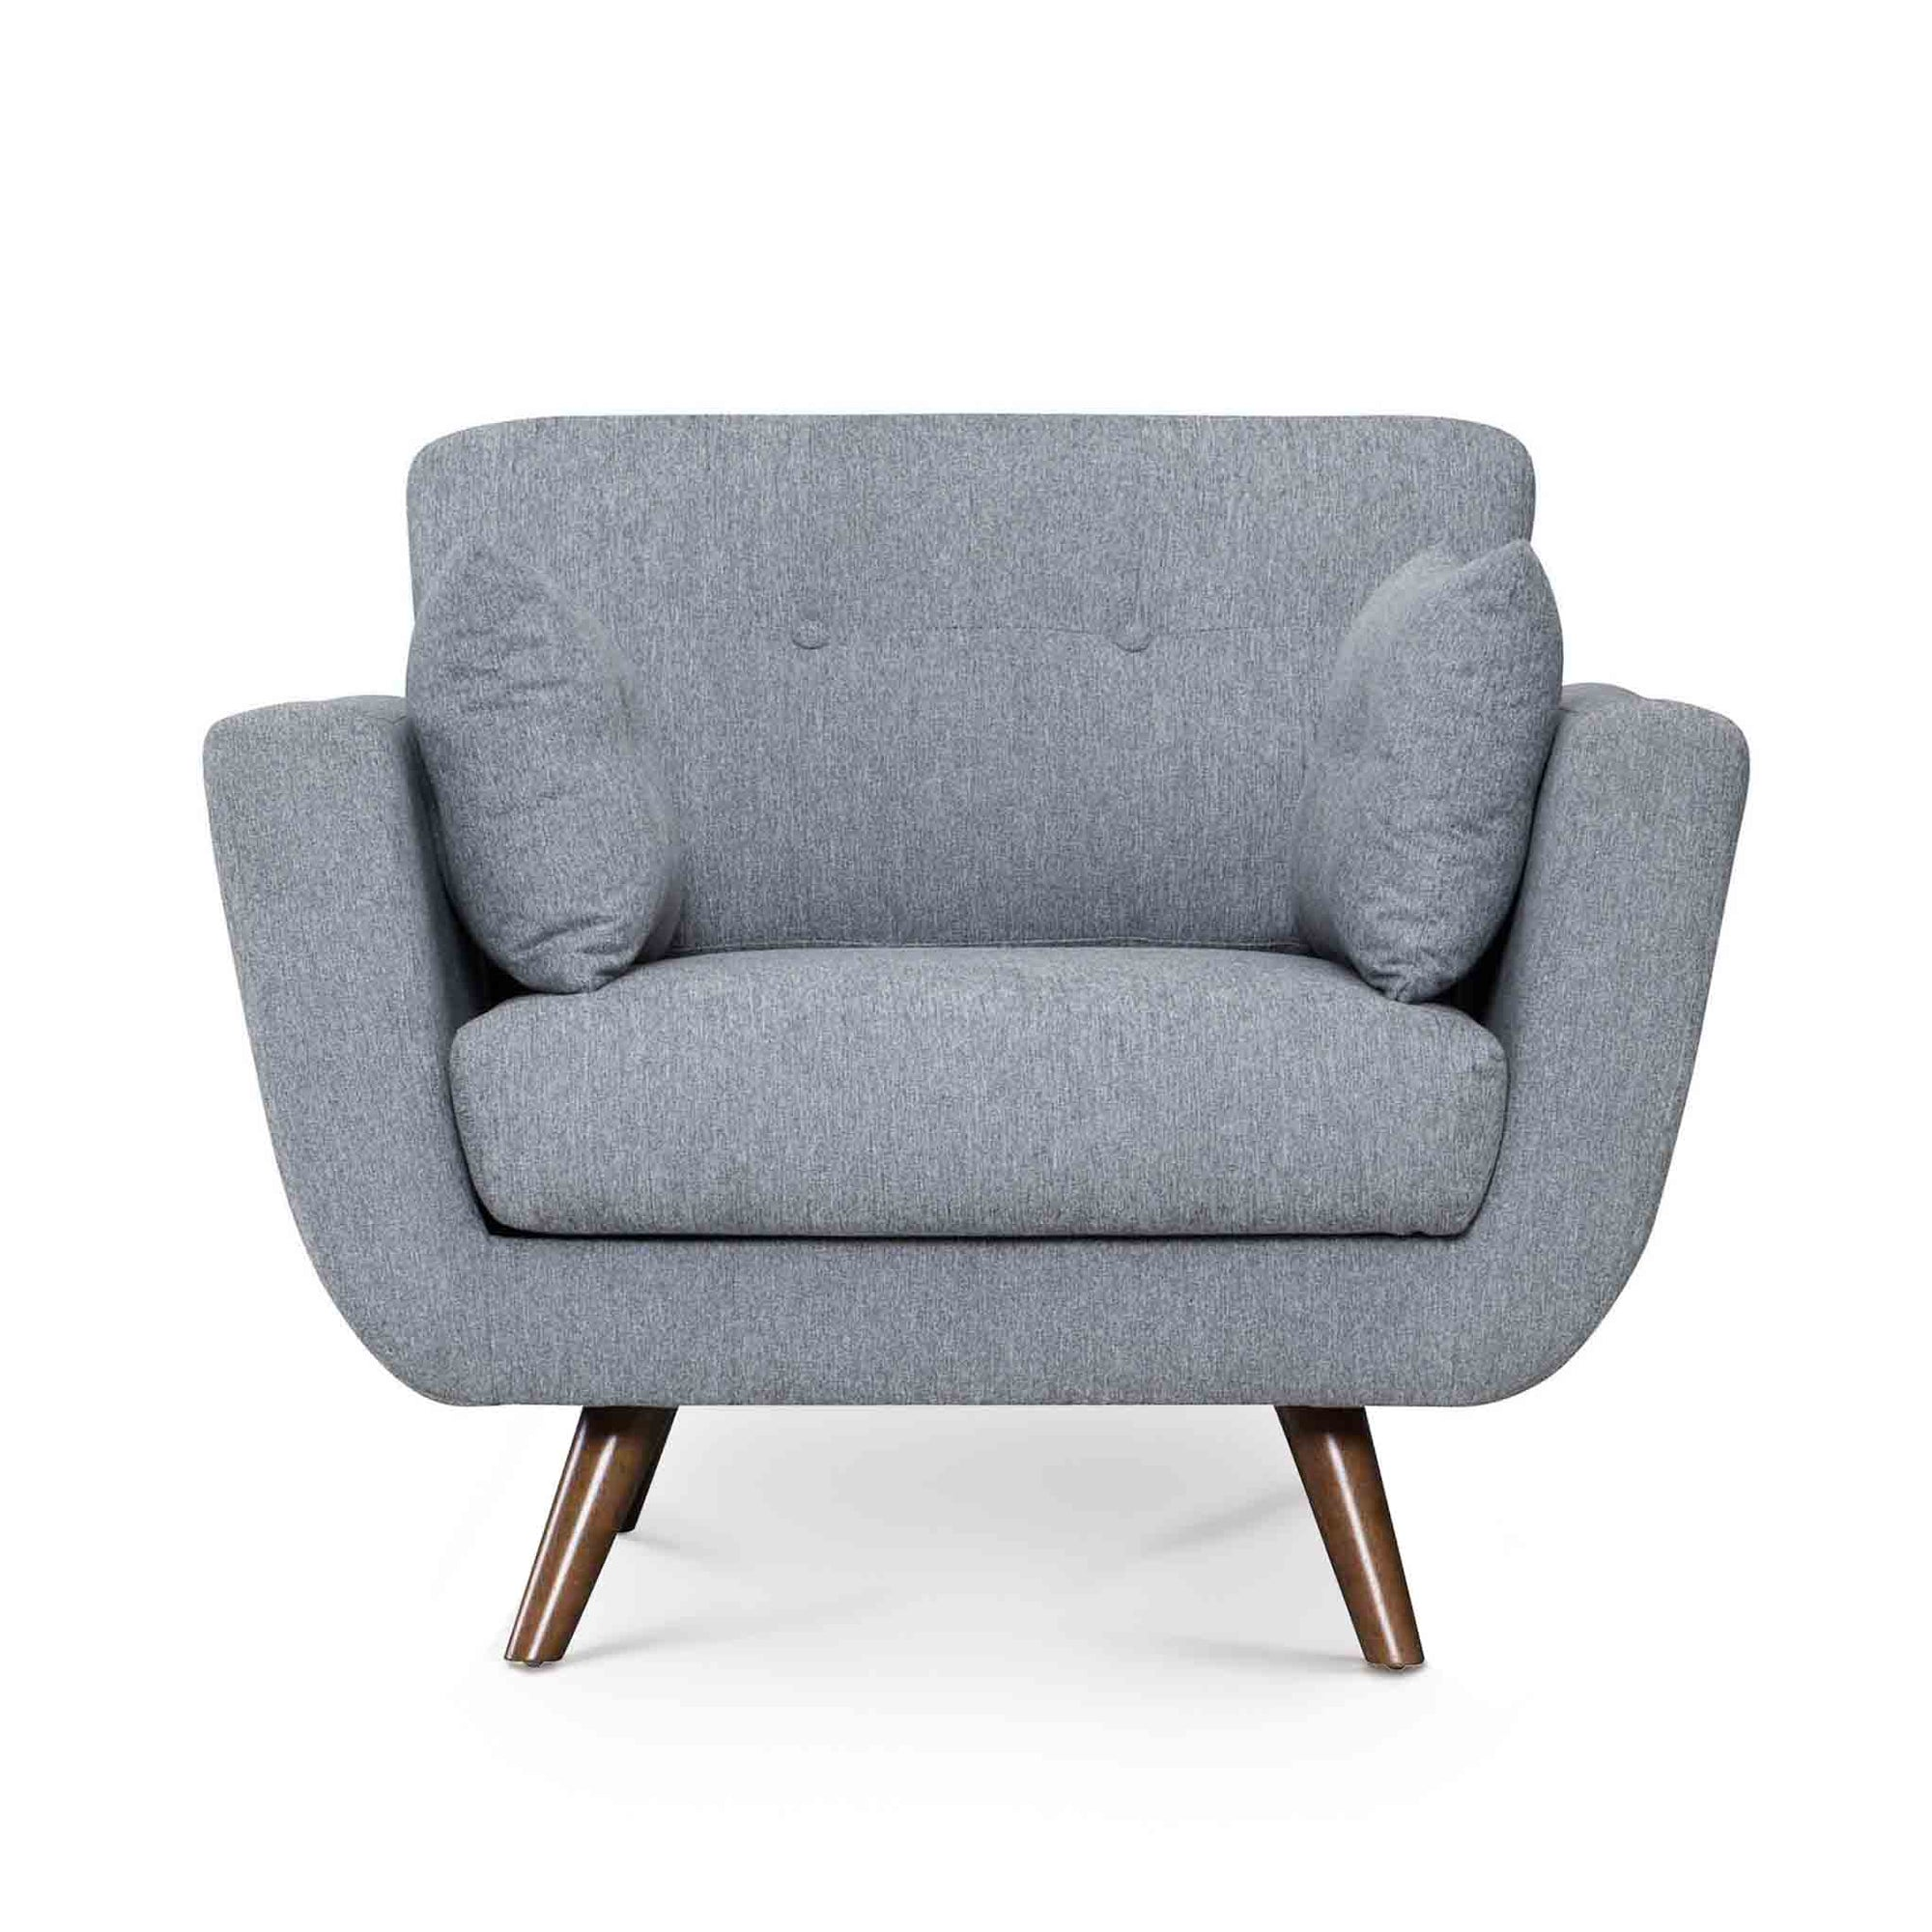 Trom Grey Scandinavian style fabric armchair by Roseland Furniture